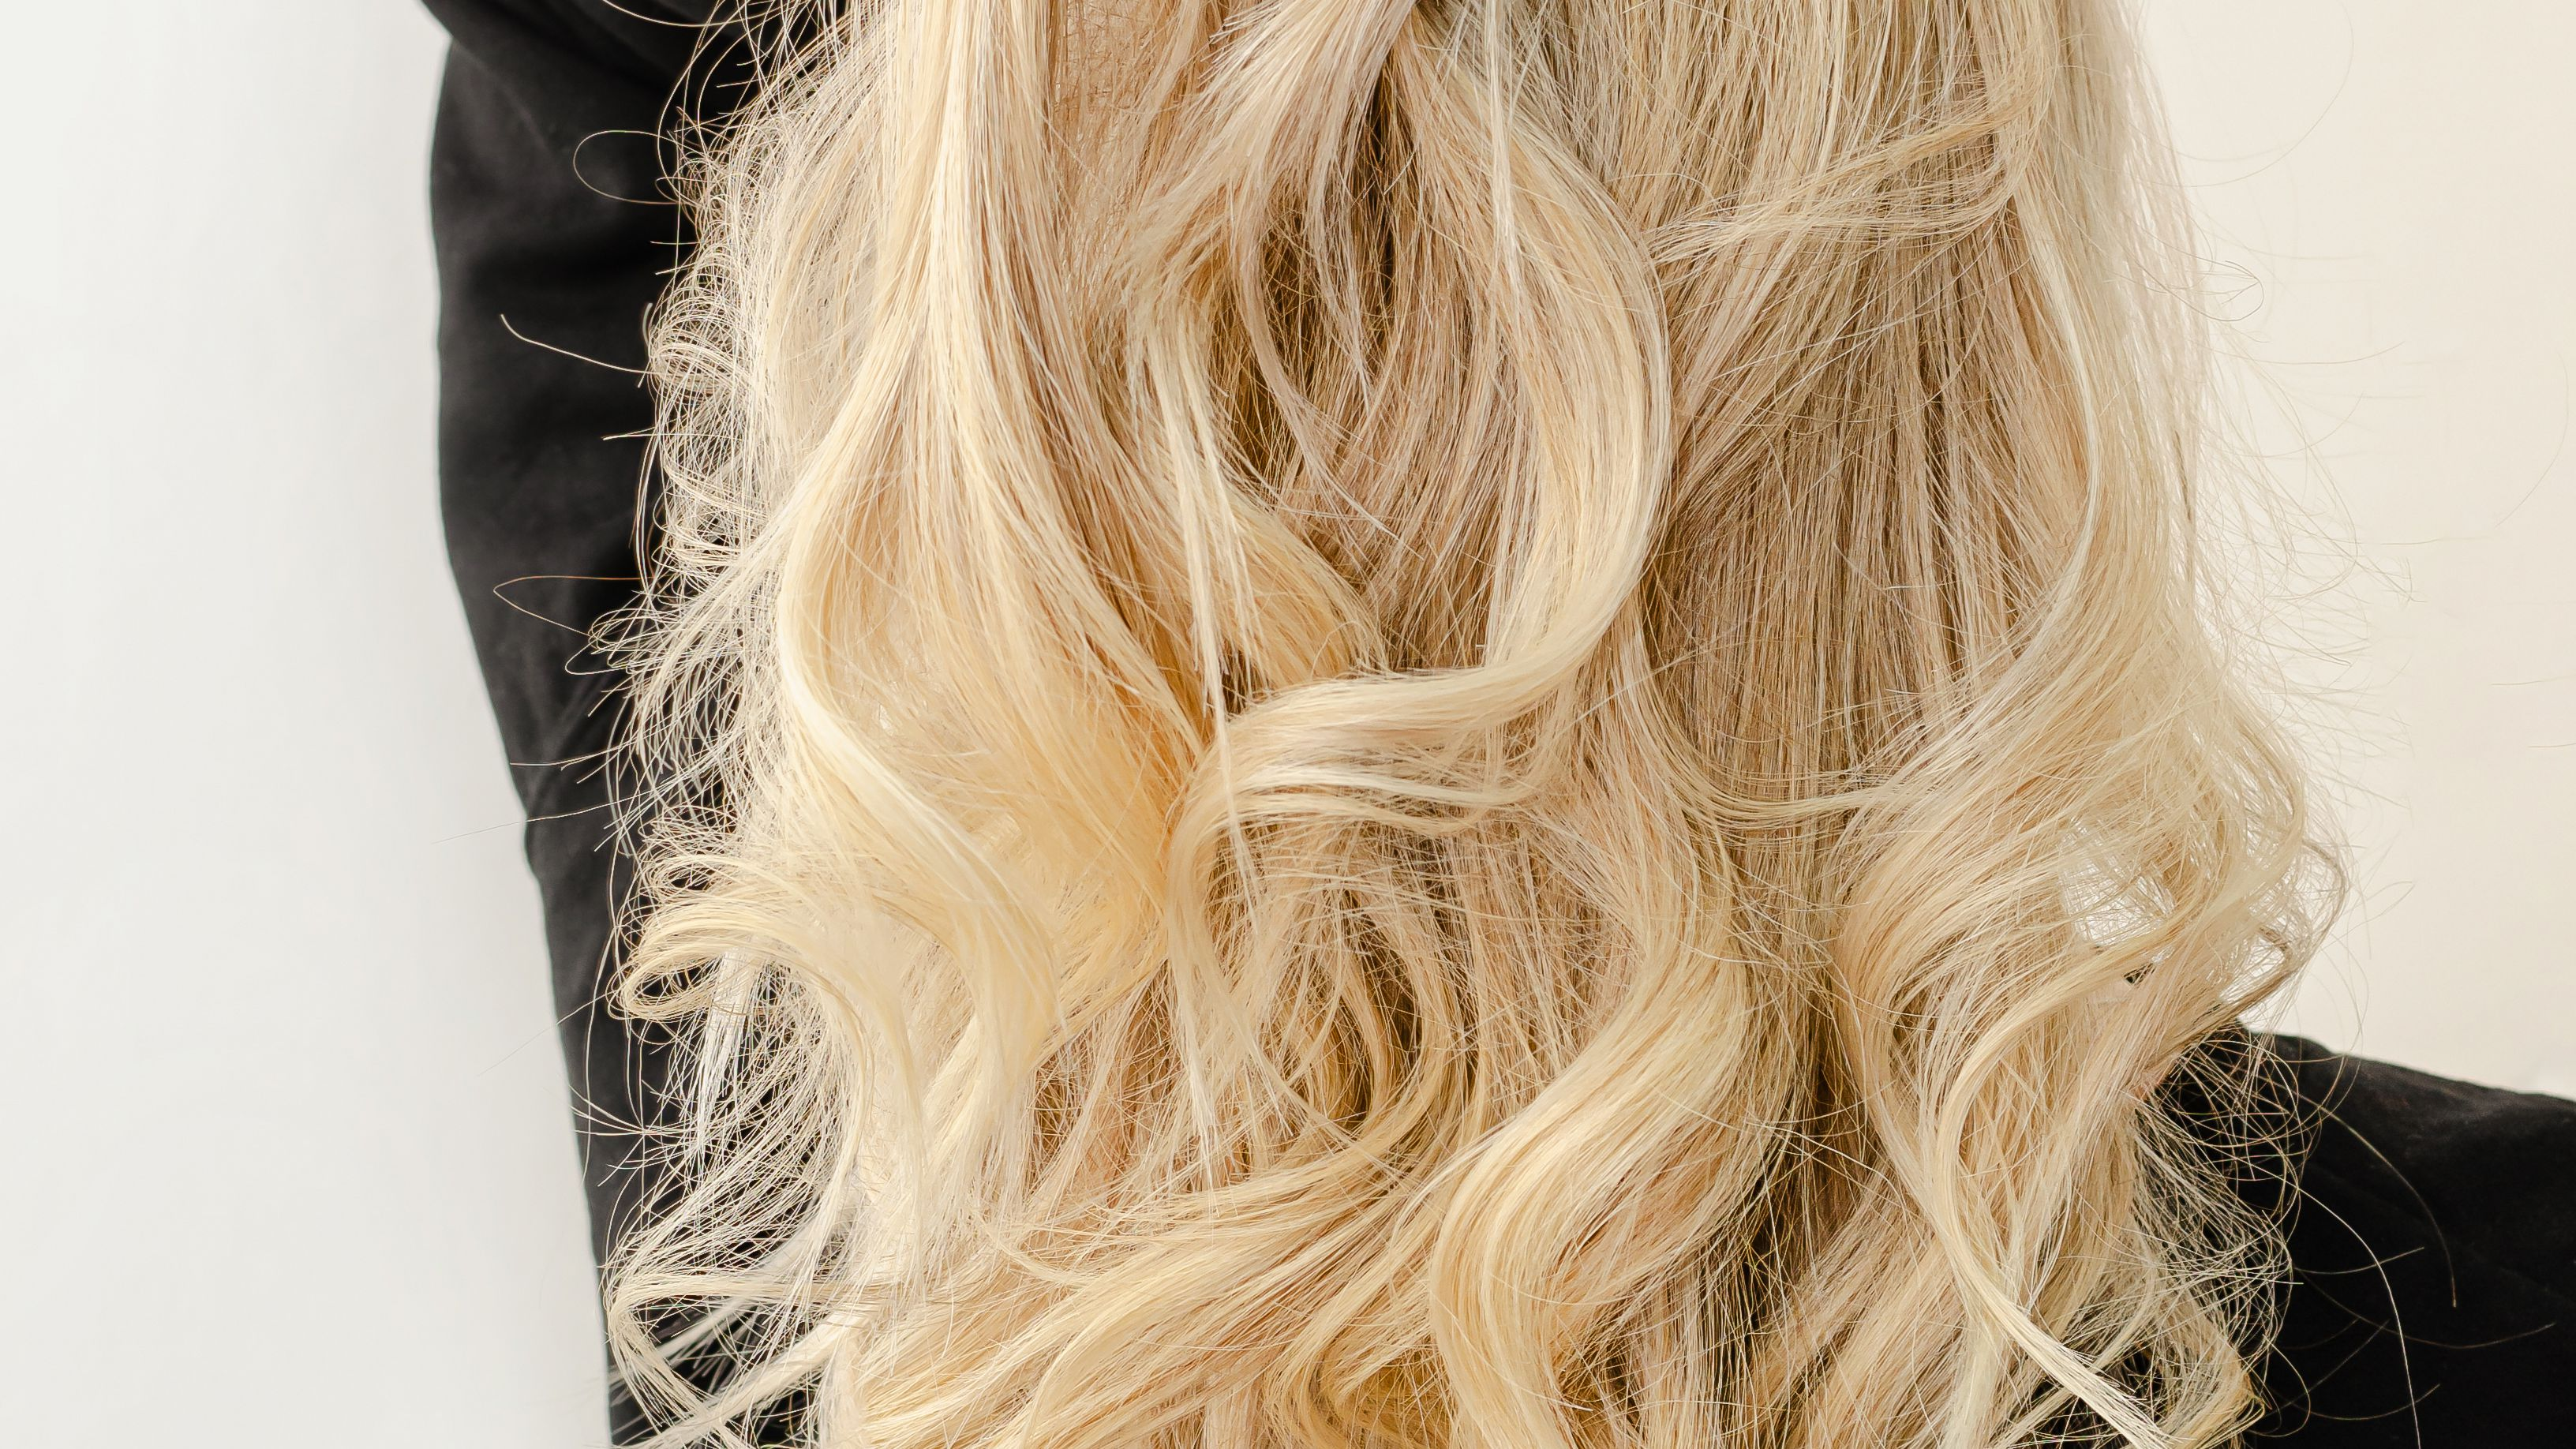 How To Take Care Of Bleached Hair According To An Expert